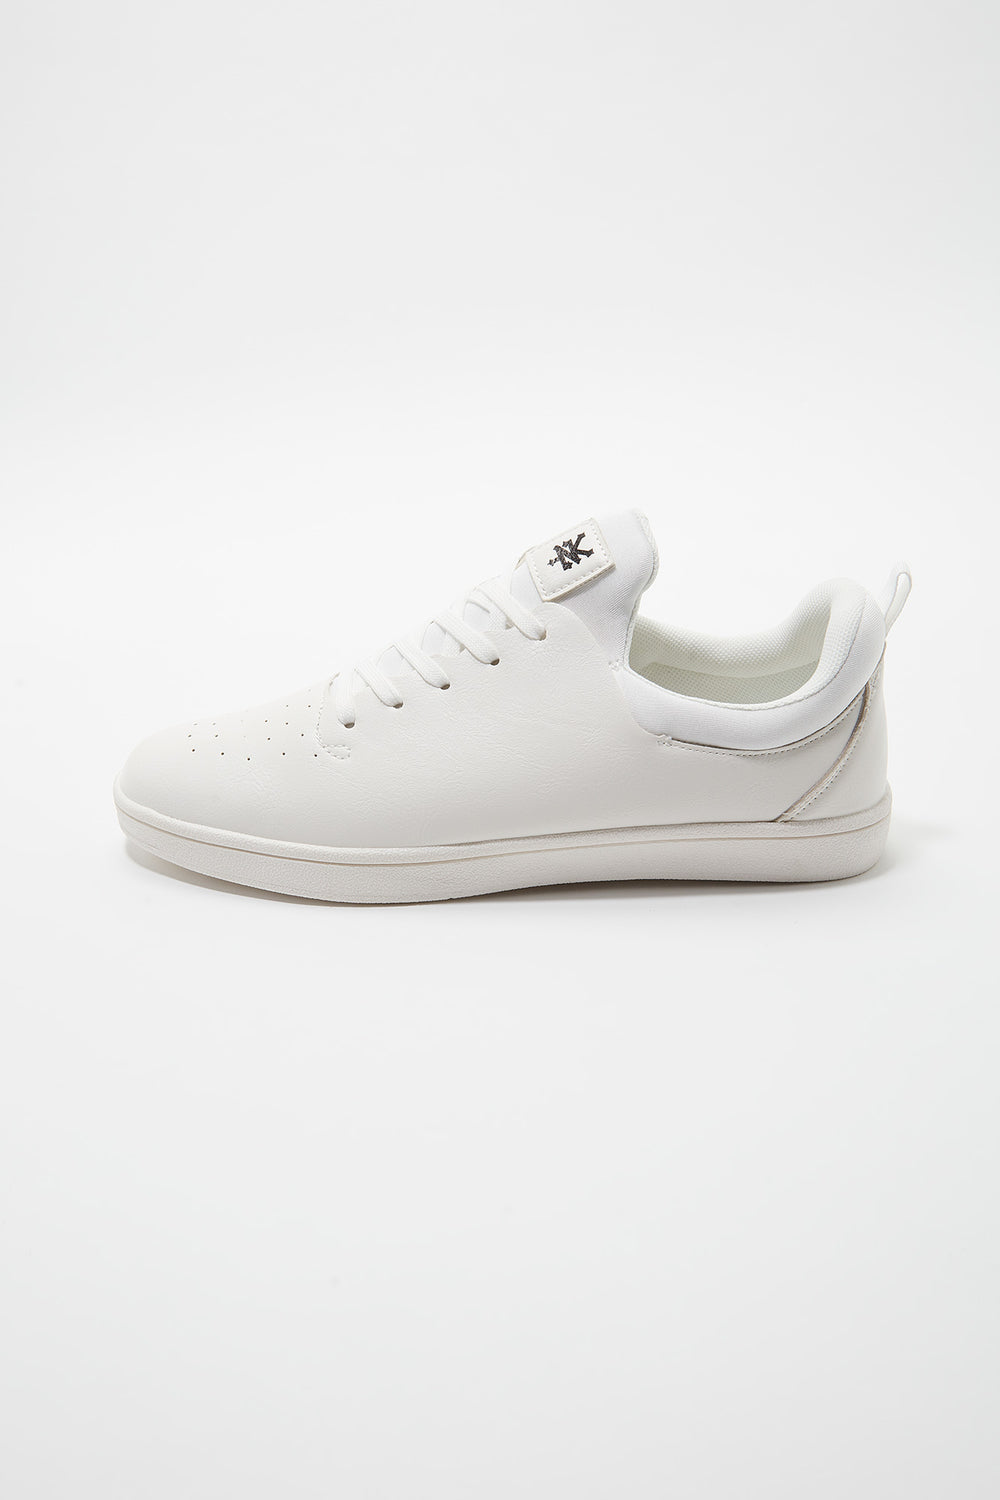 Zoo York Mens Skate Shoes White